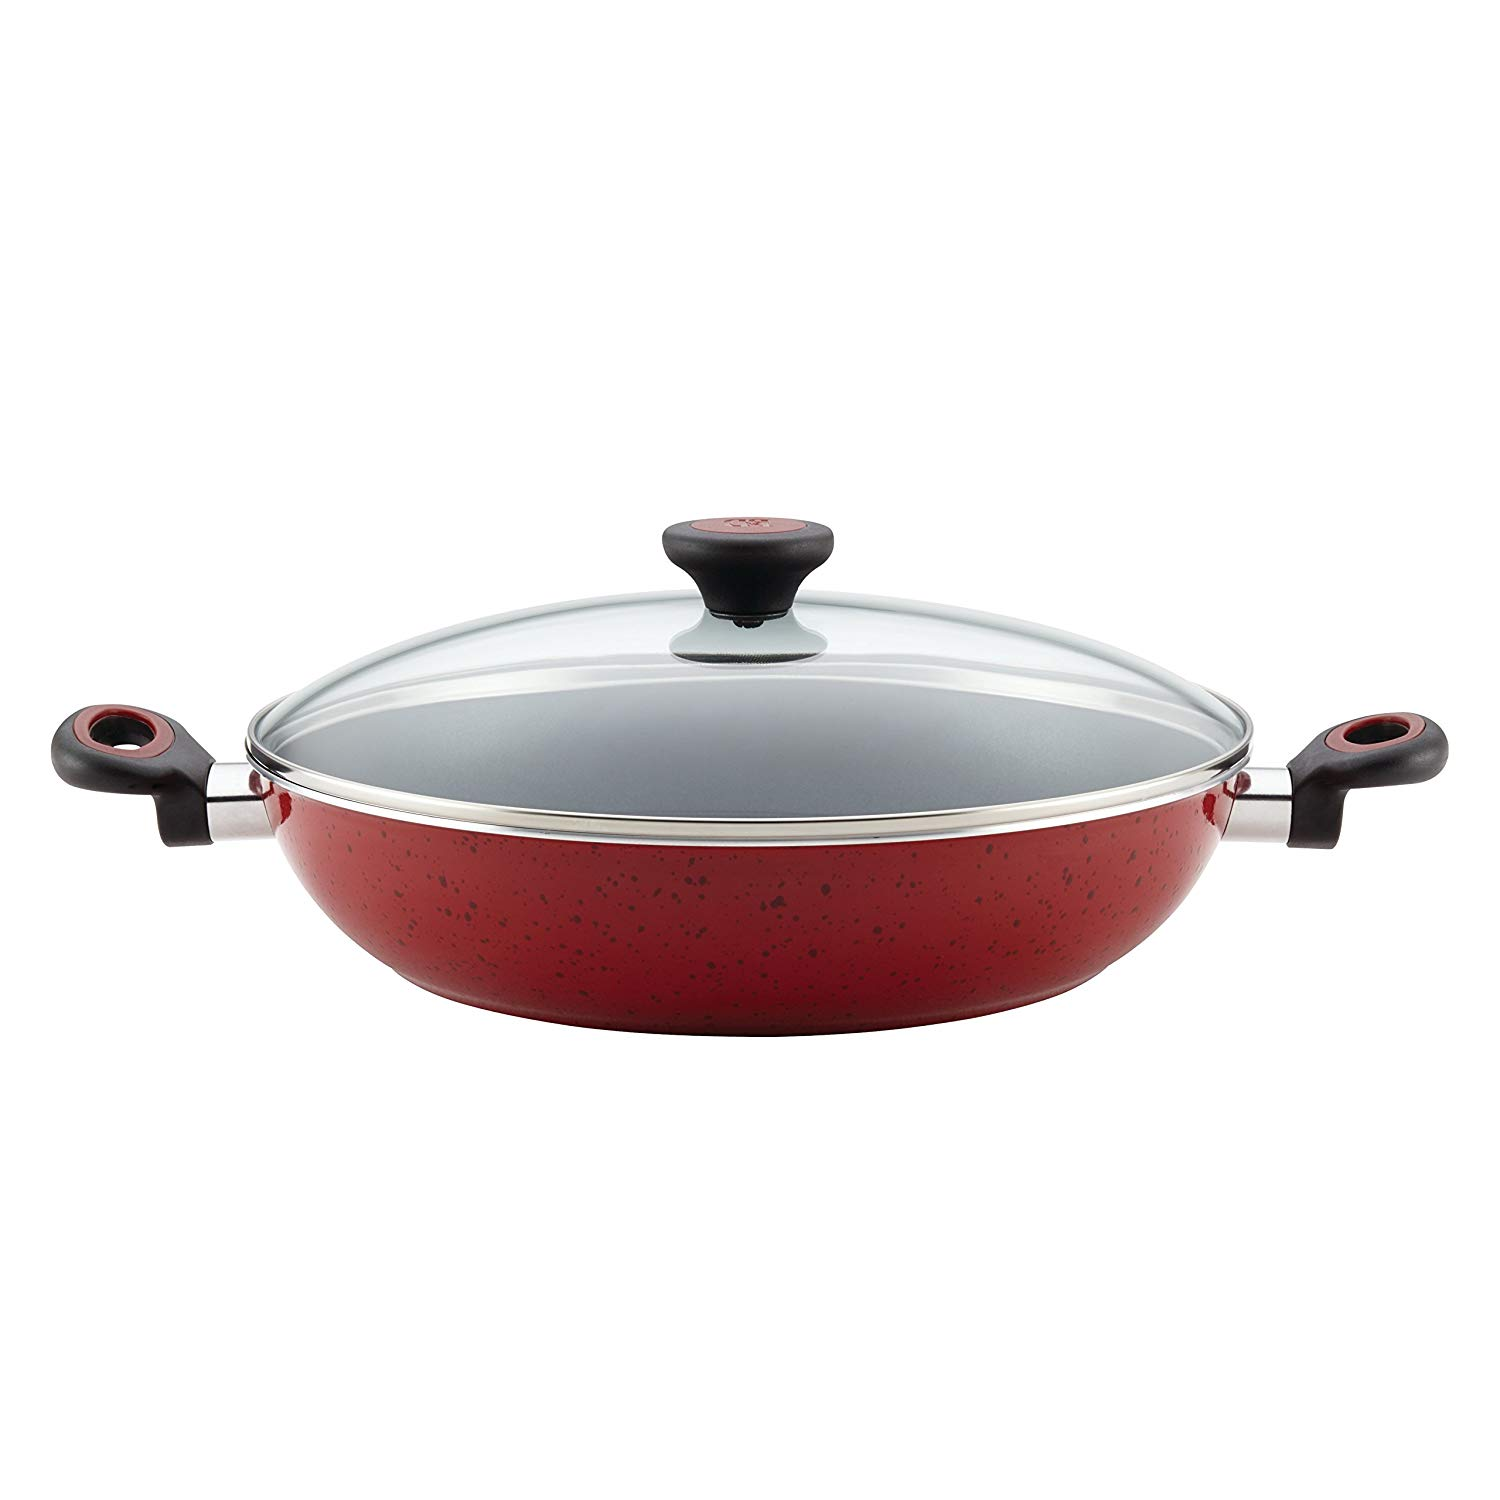 Cooking In Style Fantastic Cookware Classic Red Color 12.5 Inch Aluminum Fry Pan With Lid Non Stick Beautiful Design Heavy Quality Kitchen Use Large Capacity Simple Addition To Kitchen